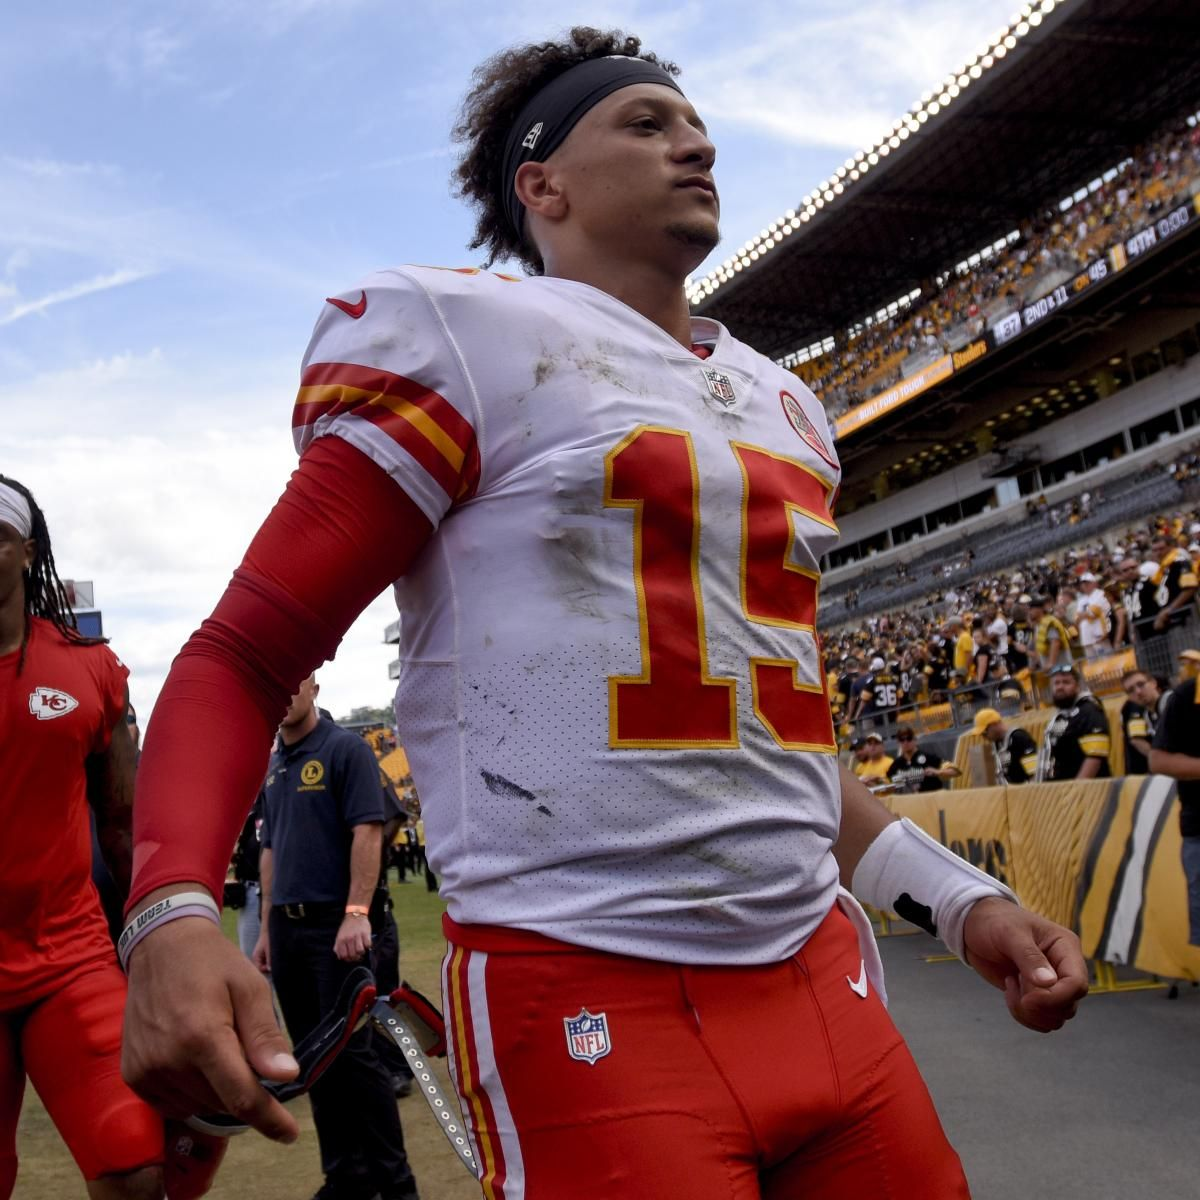 A Star Is Born in KC Patrick Mahomes Shows He's 'The